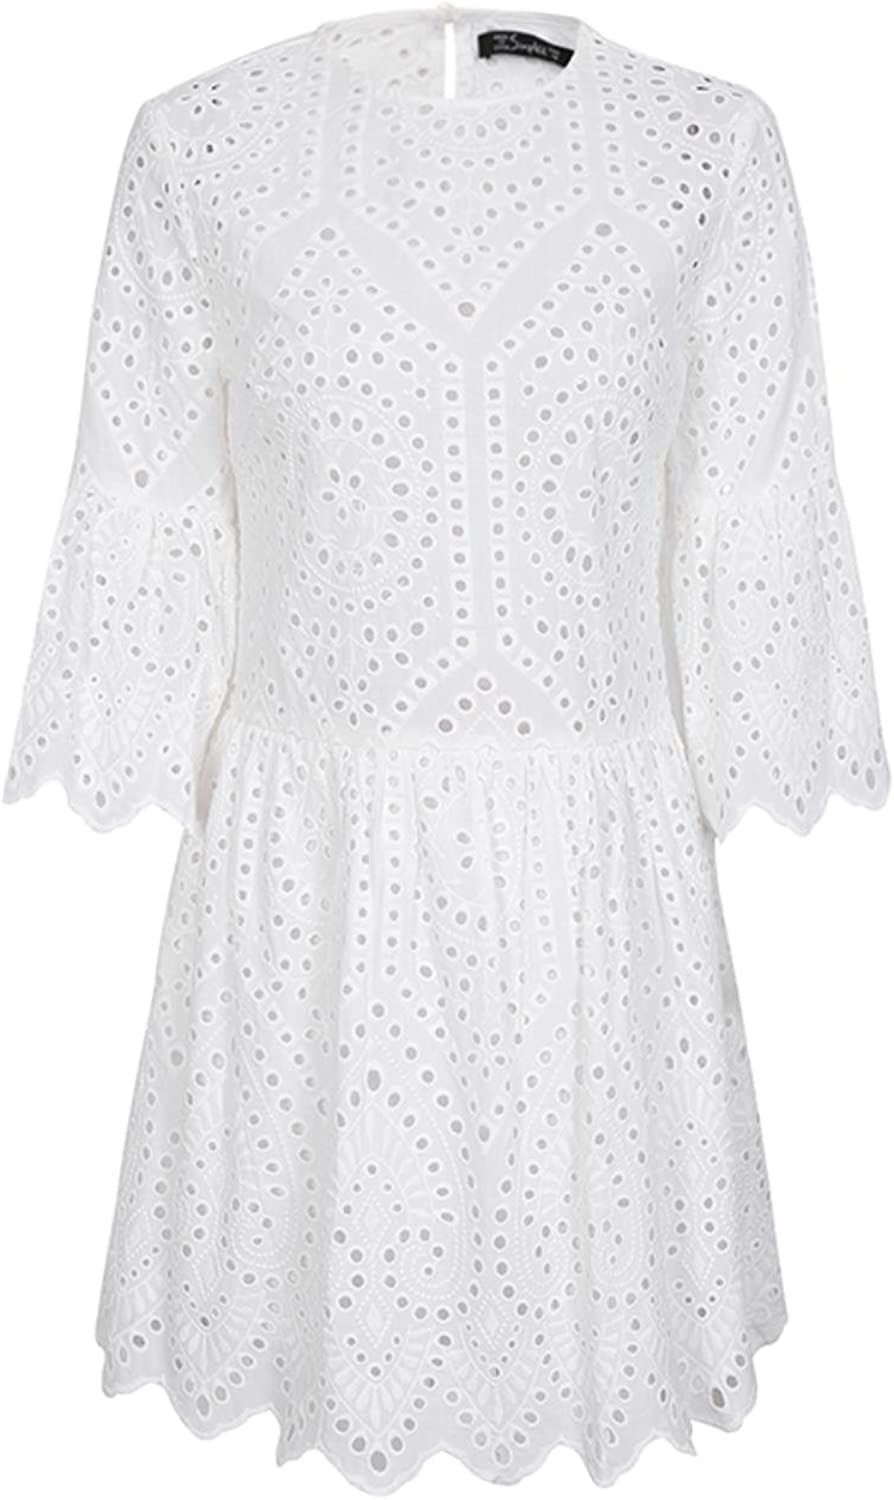 Women Cotton Lace Embroidery Button Ruffle Sleeve Causal White Dress